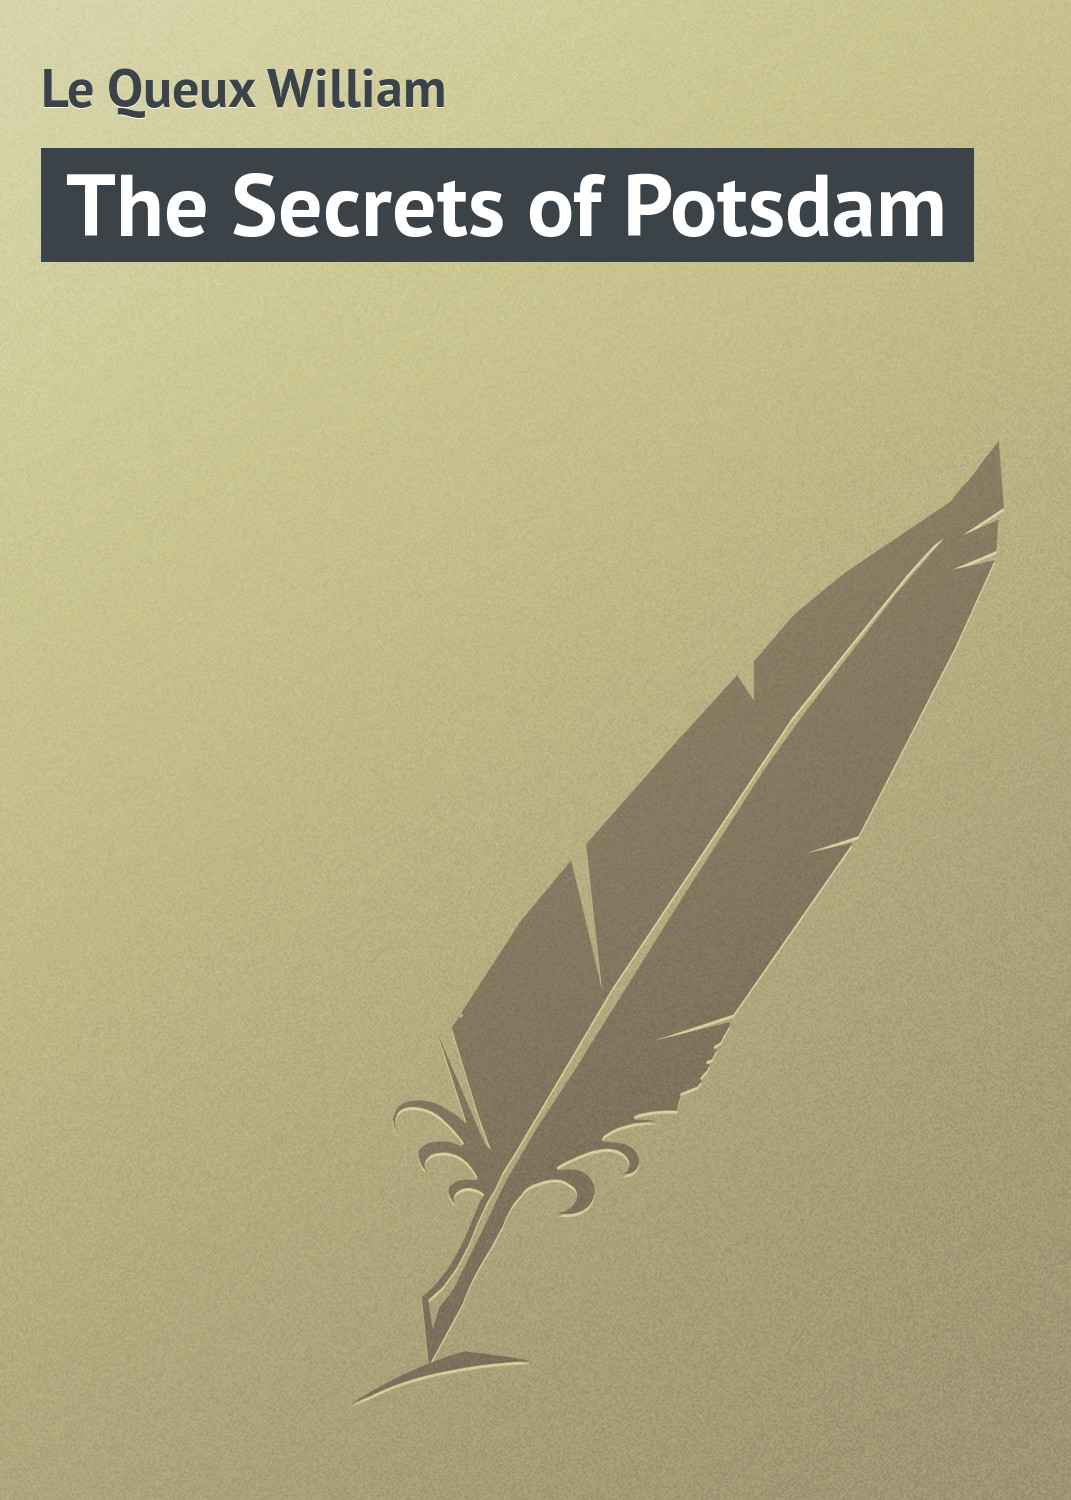 все цены на Le Queux William The Secrets of Potsdam